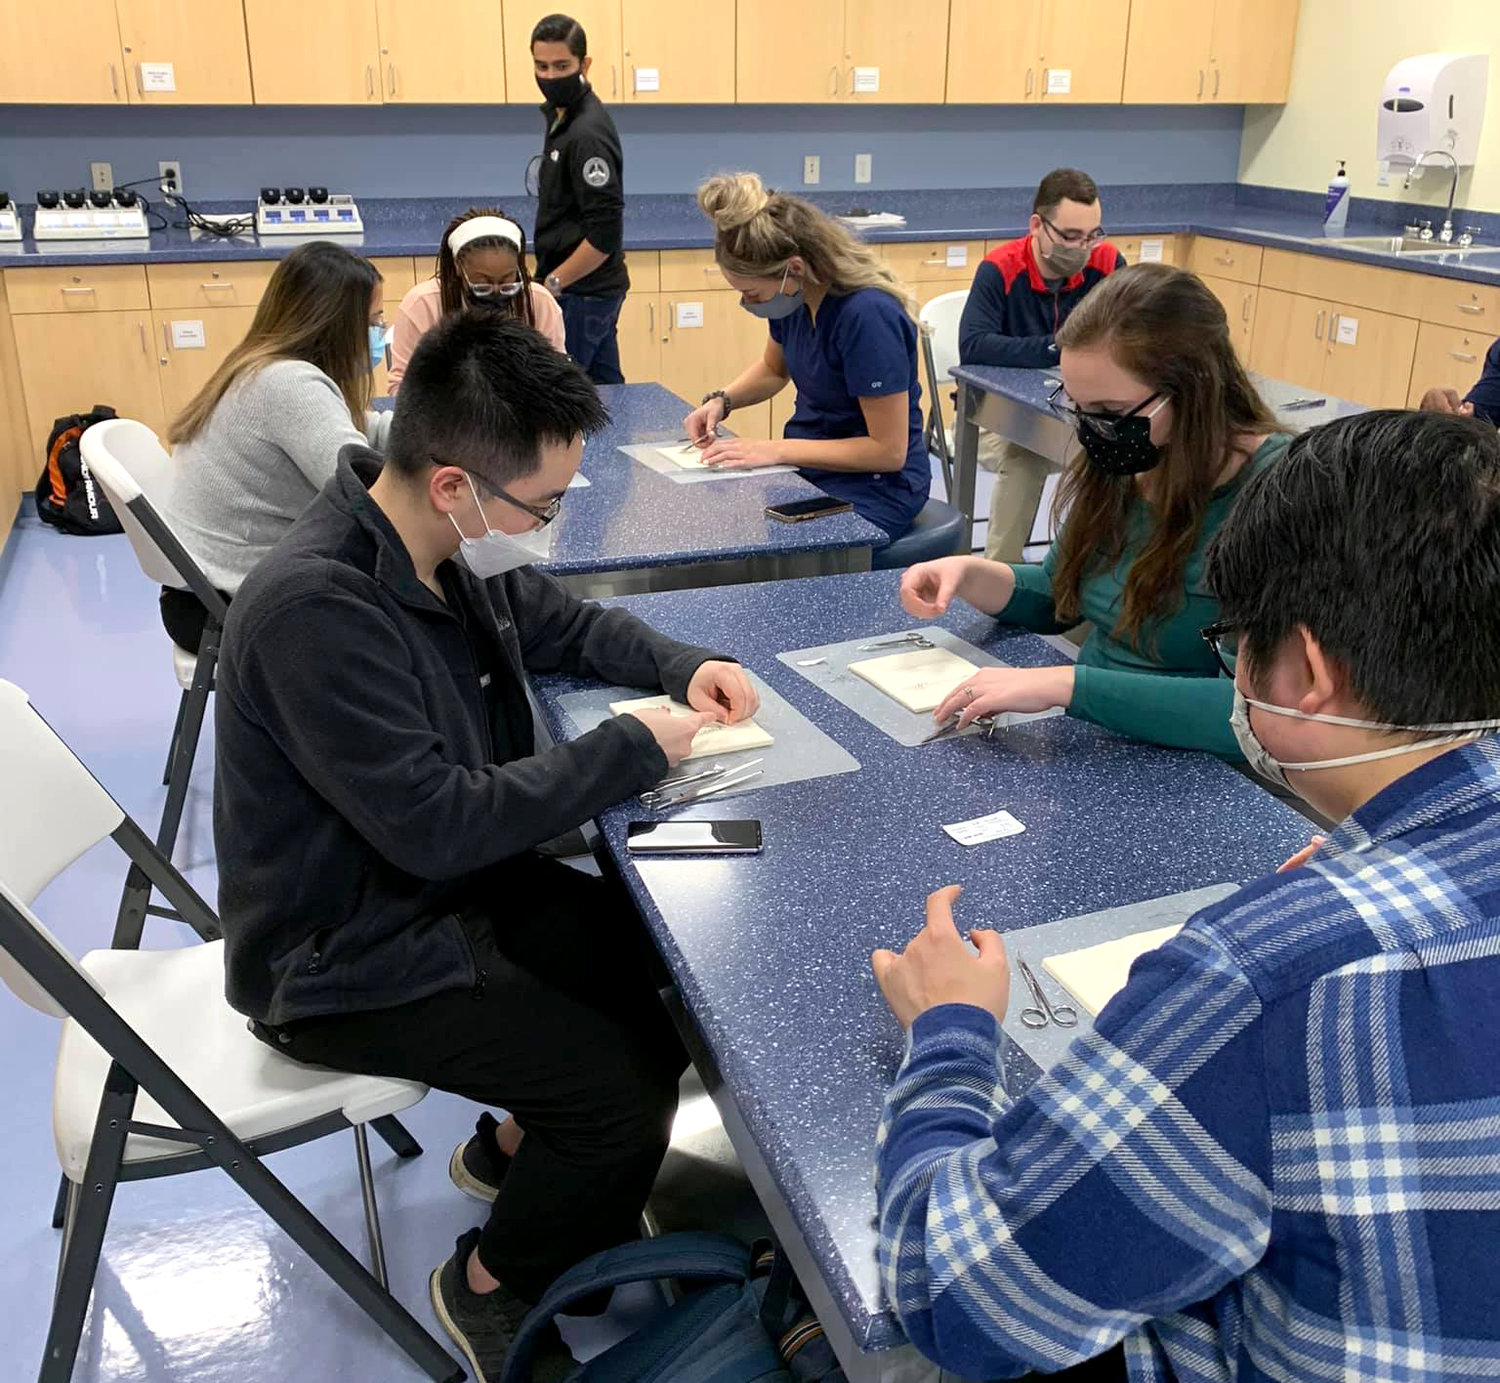 In collaboration with Midwestern University's Biomedical Sciences program, Arizona College of Podiatric Medicine's student doctors hosted a suture workshop in an effort to strengthen the relationship between the Master's program at Midwestern with AZCPM.